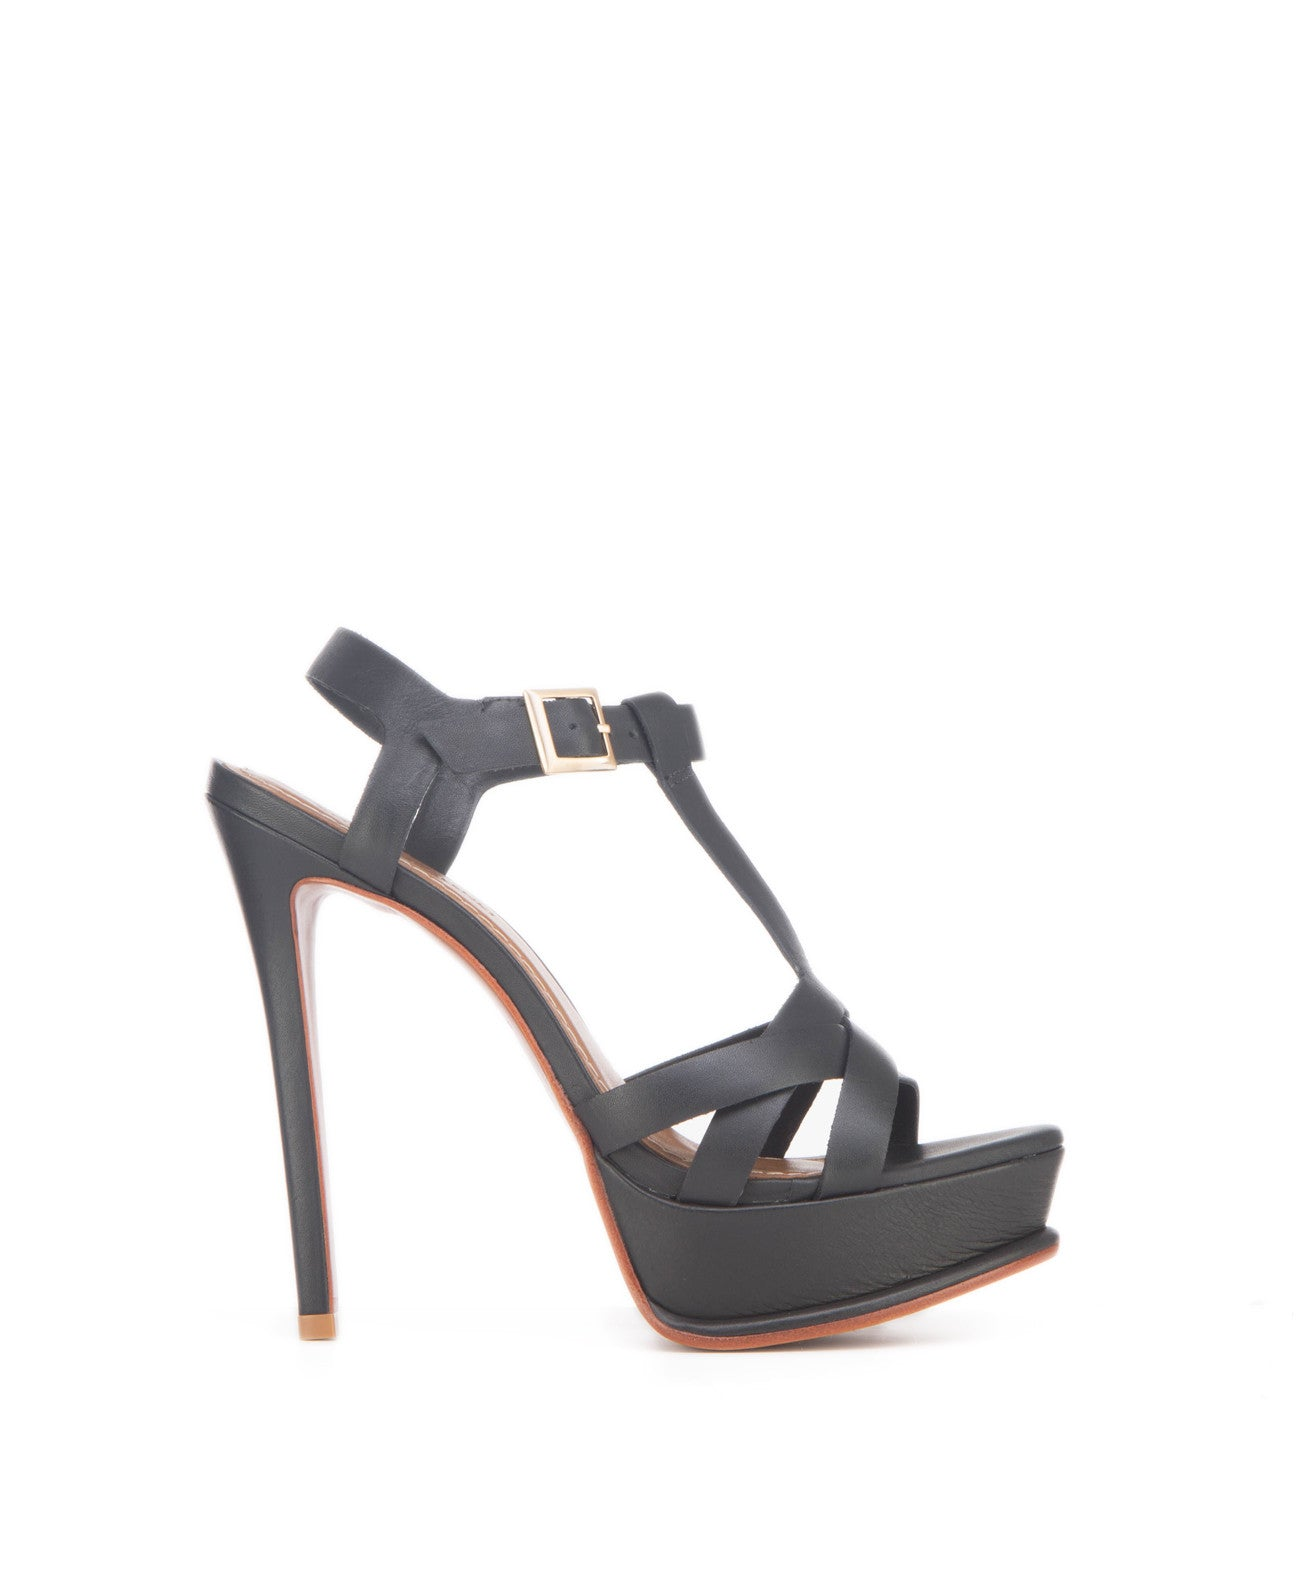 Gina black - Koko & Palenki - 1Measurements: height: 9.5 centimetres, heel: 10 centimetres, sole height: 1.5 centimetres